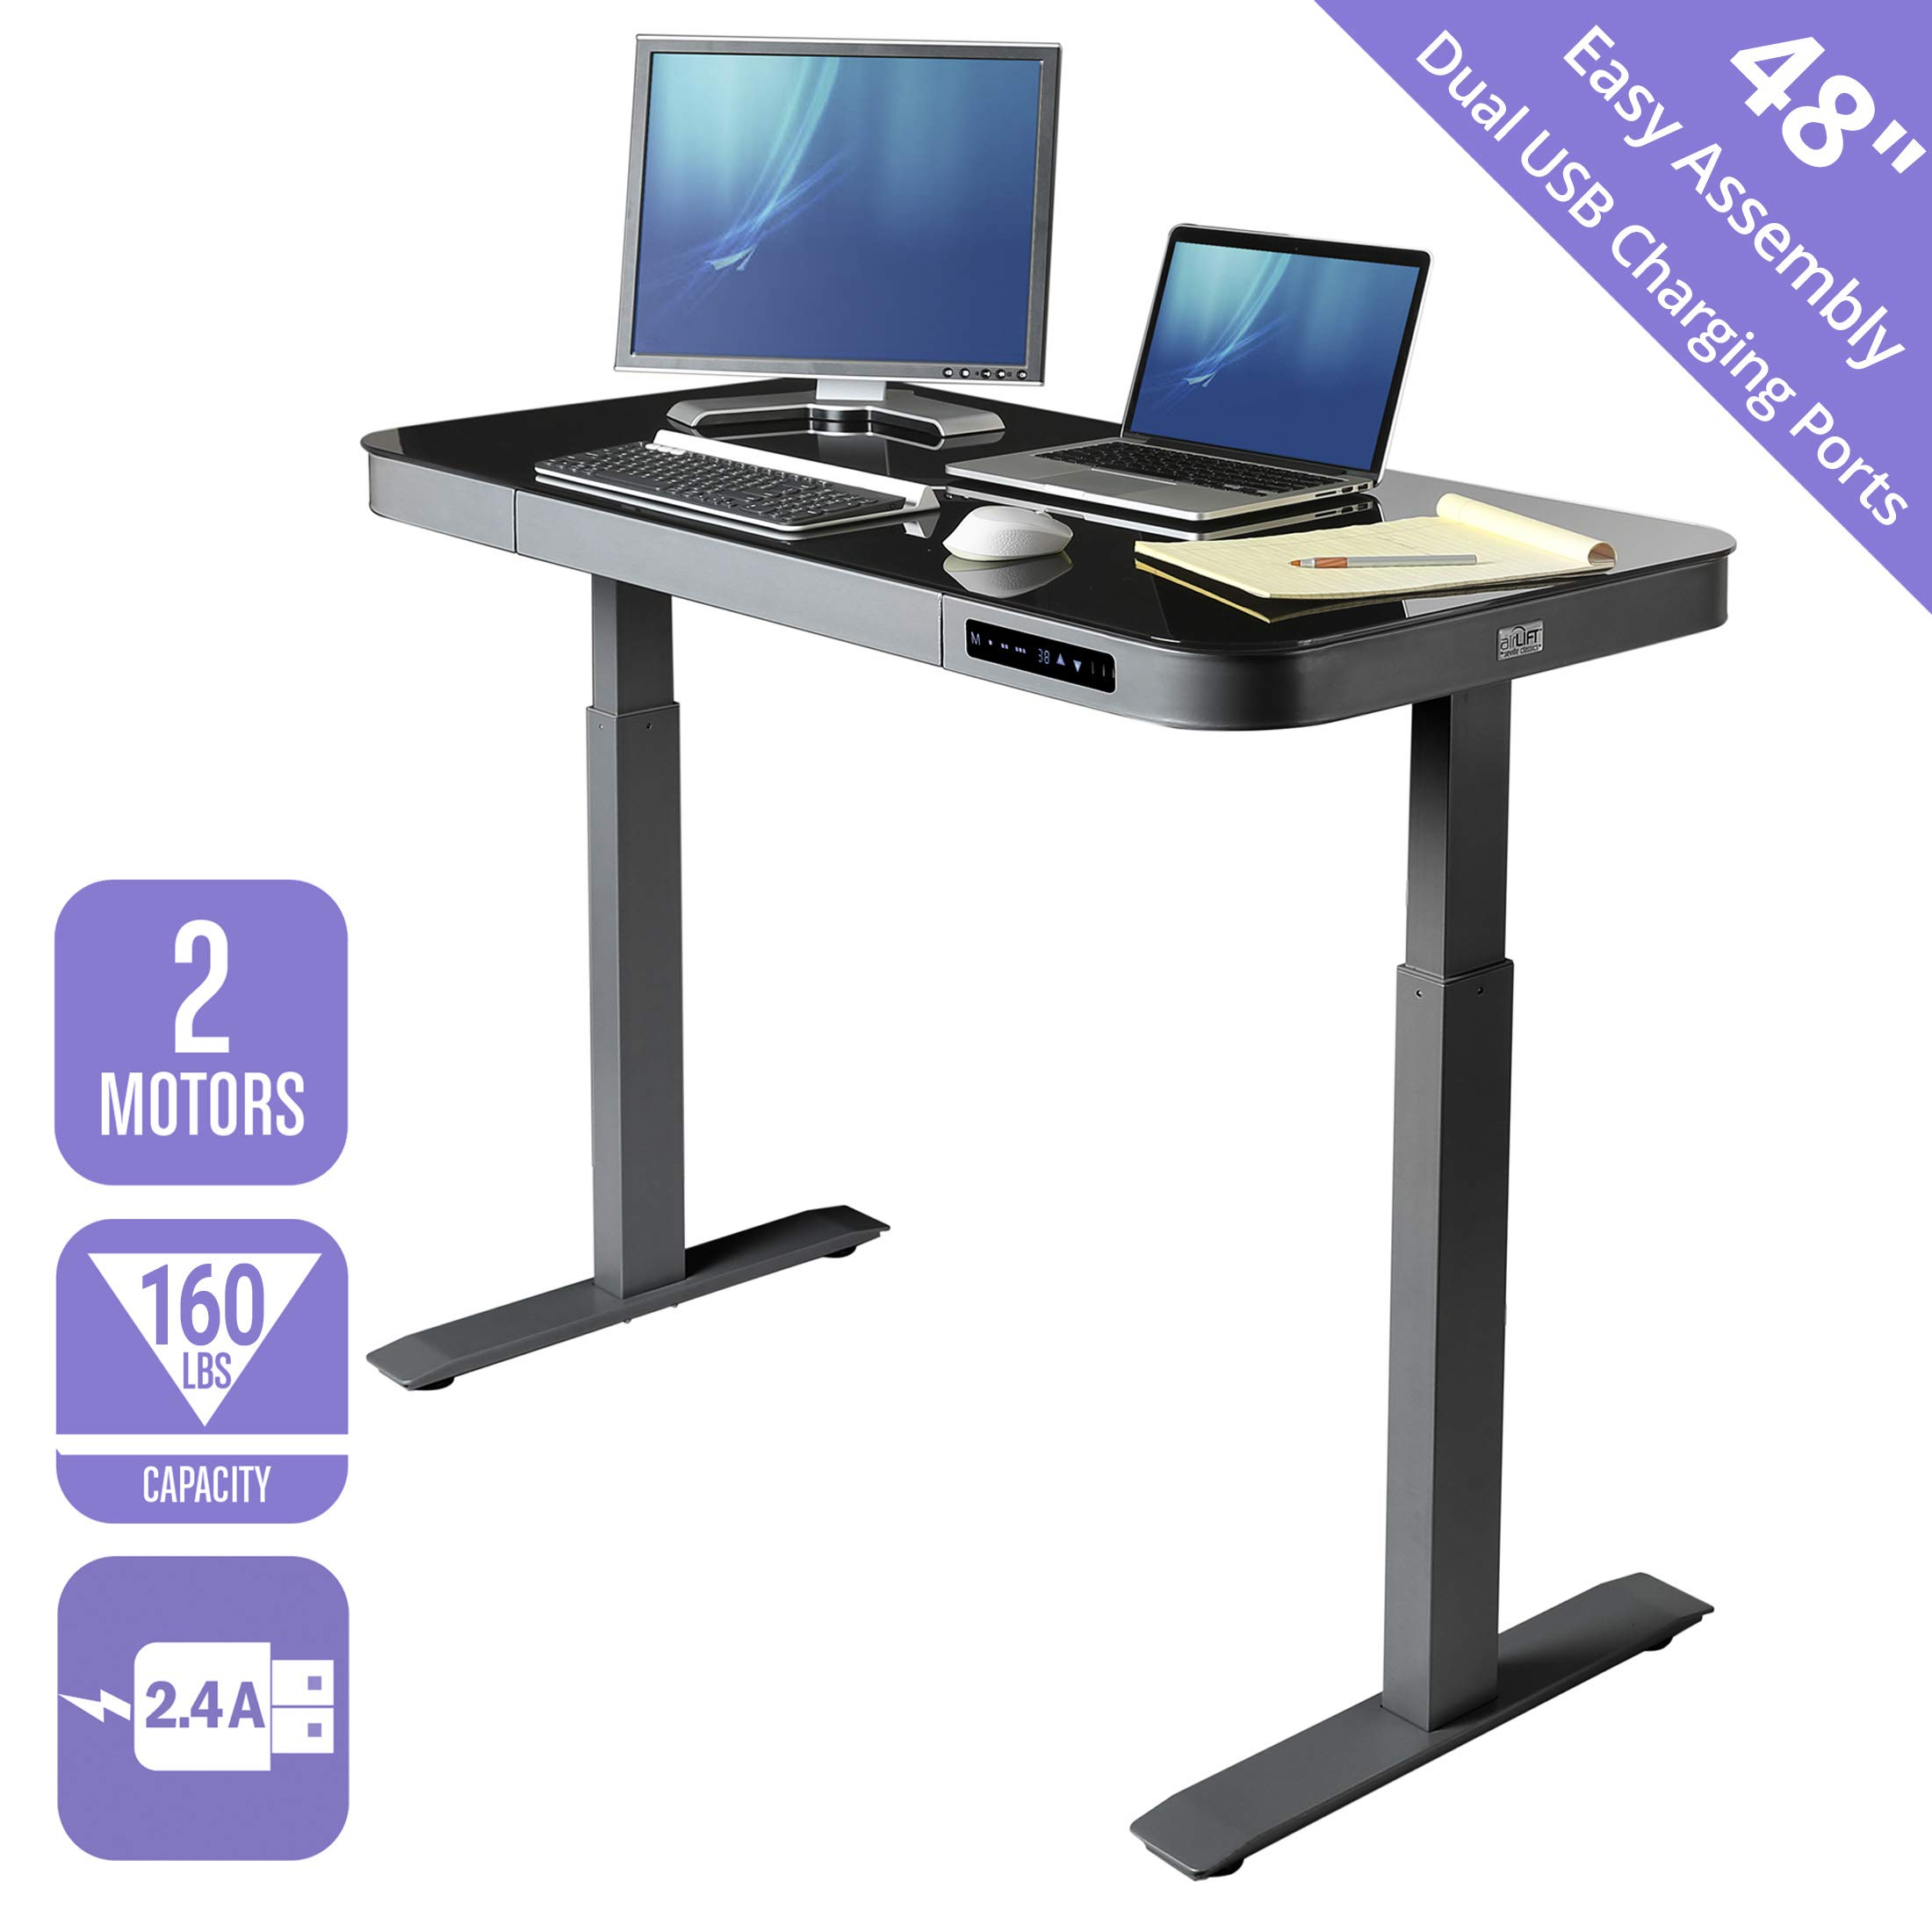 Seville Classics AIRLIFT Tempered Glass Electric Standing Desk with Drawer, 2.4A USB Ports, 3 Memory Buttons (Max. Height 47'') Dual Motors, Gray with Black Top by Seville Classics